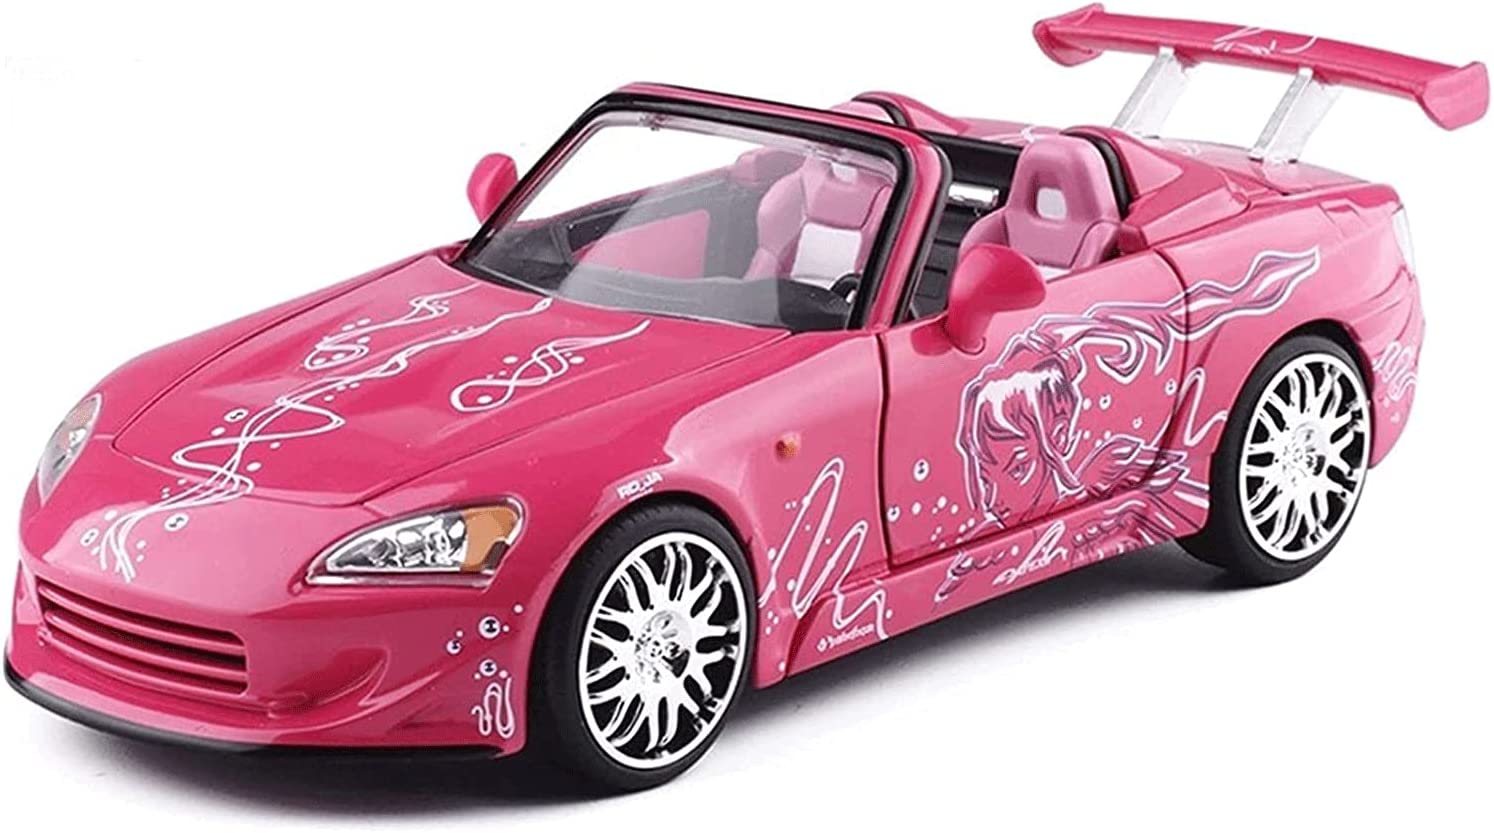 GOSHITONG Toy Sports Car 1:24 Ratio Passion Speed Complete Free Shipping and Award Die-Castin